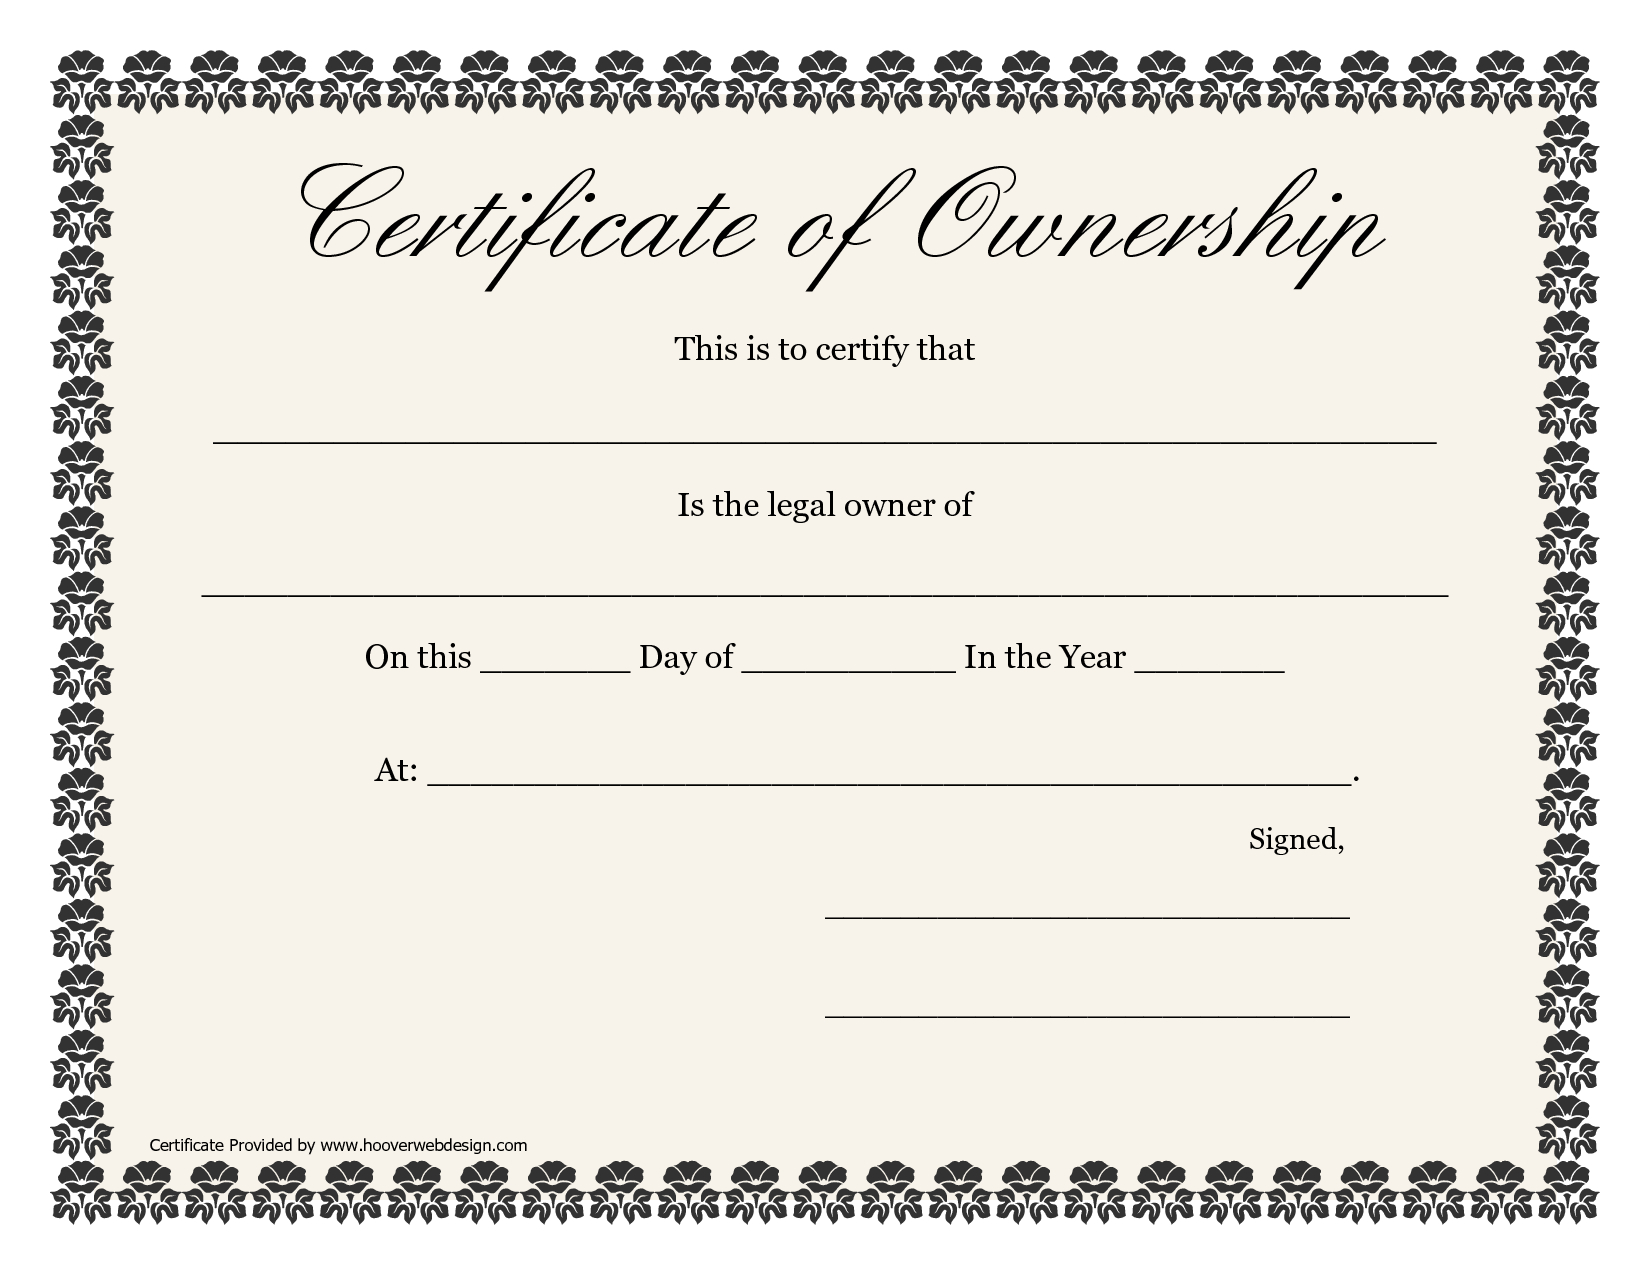 ❤️5+ Free Sample Of Certificate Of Ownership Form Template❤️ Inside Certificate Of Ownership Template